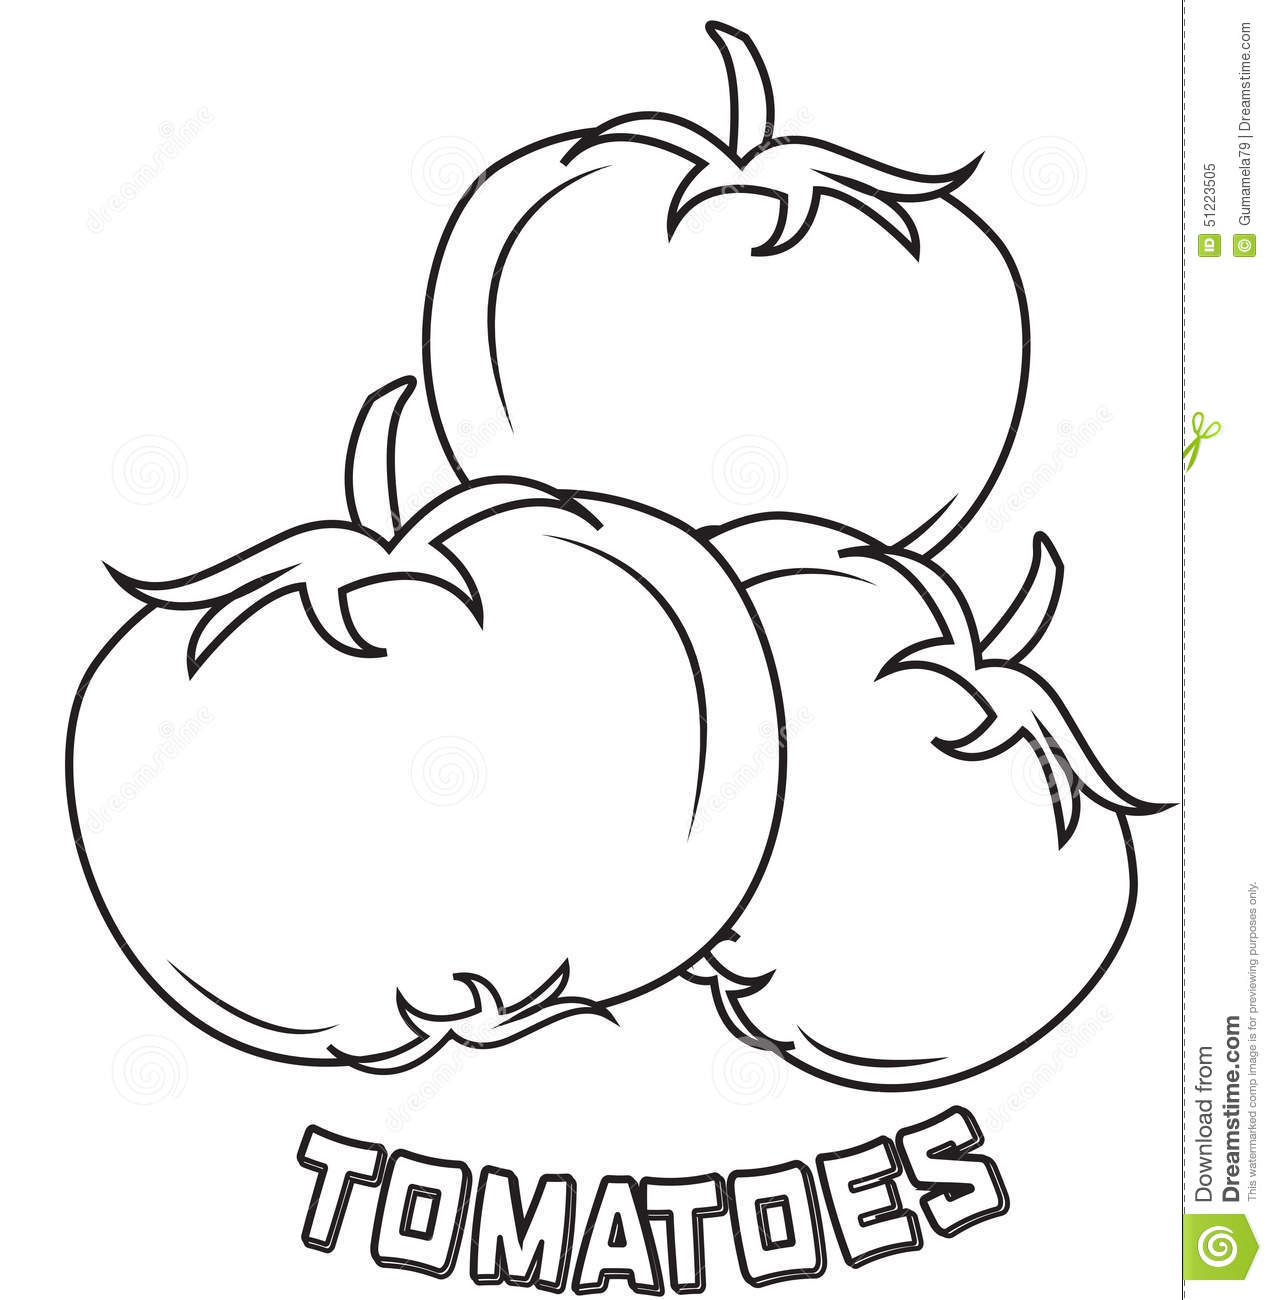 Royalty Free Stock Photo: Tomatoes coloring page. Image